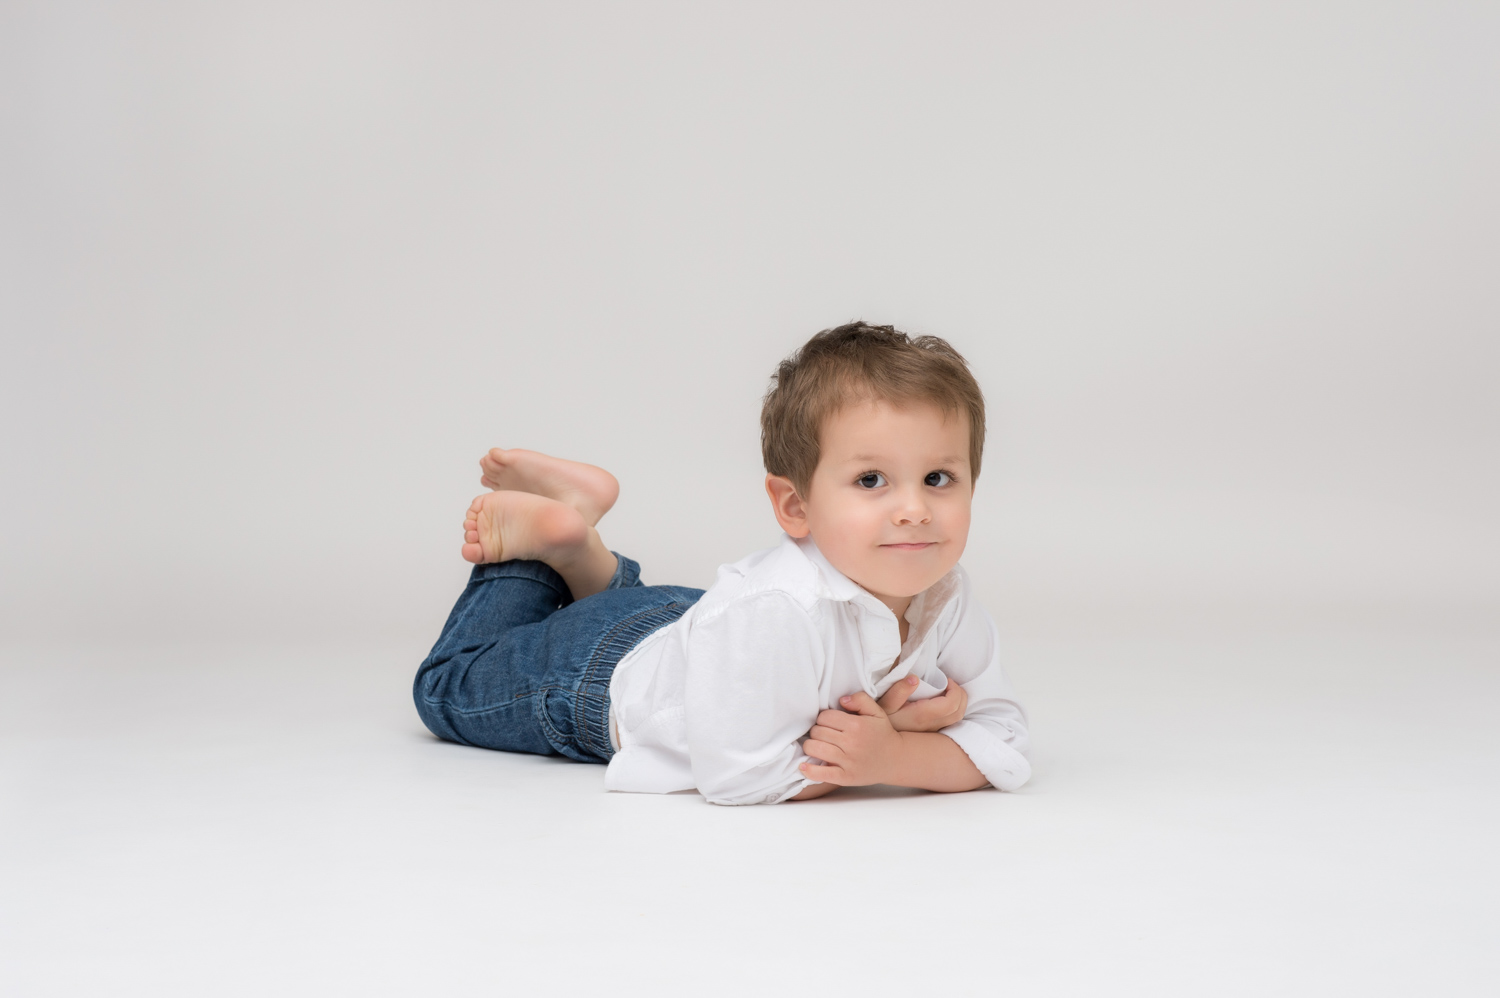 Little boy poses in Chicago photo studio for portraits.